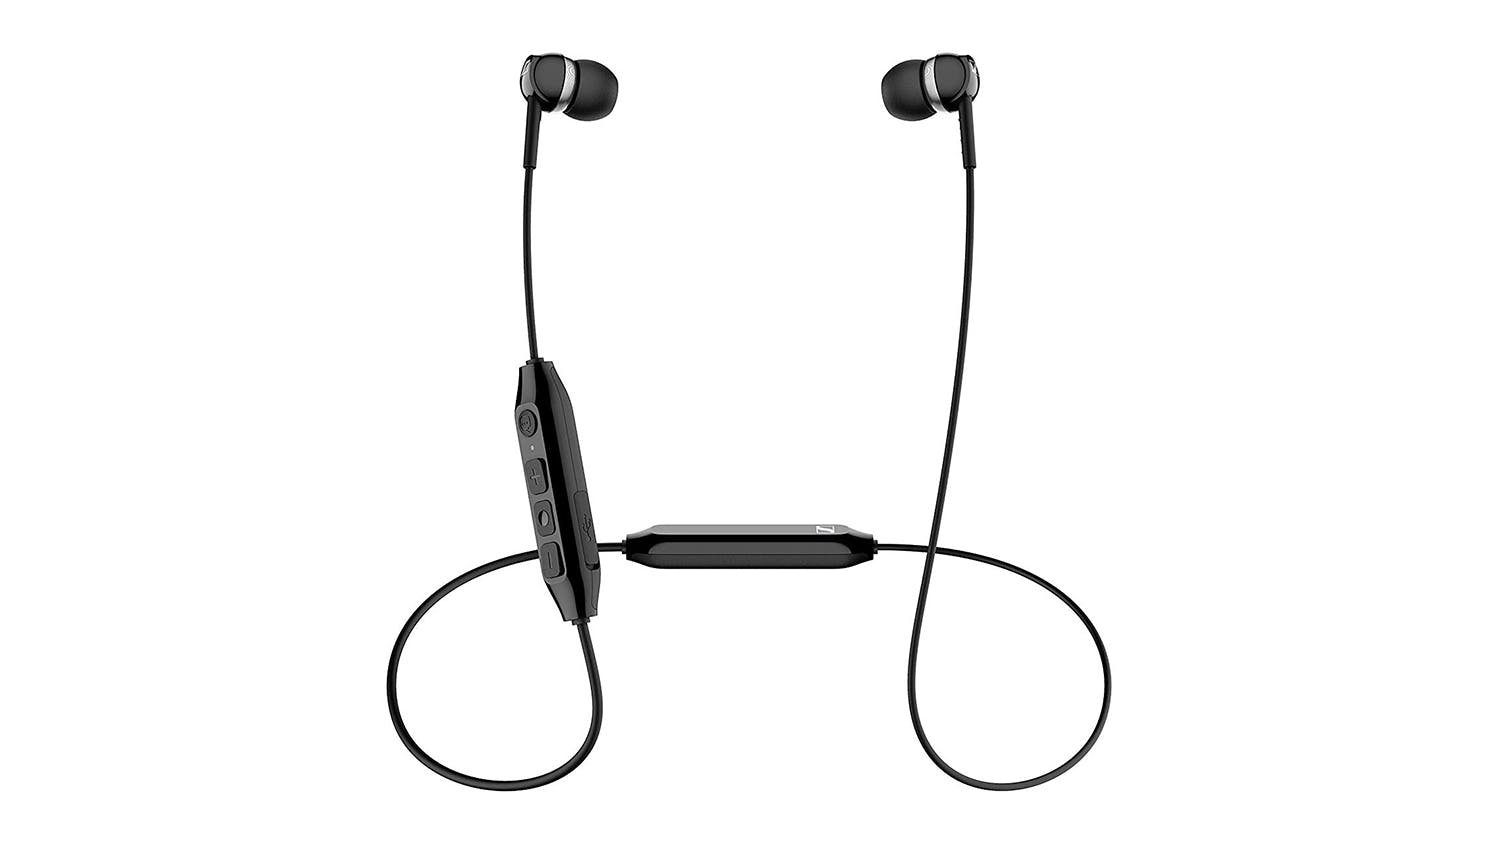 Sennheiser CX350 Wireless Bluetooth In-Ear Headphones - Black